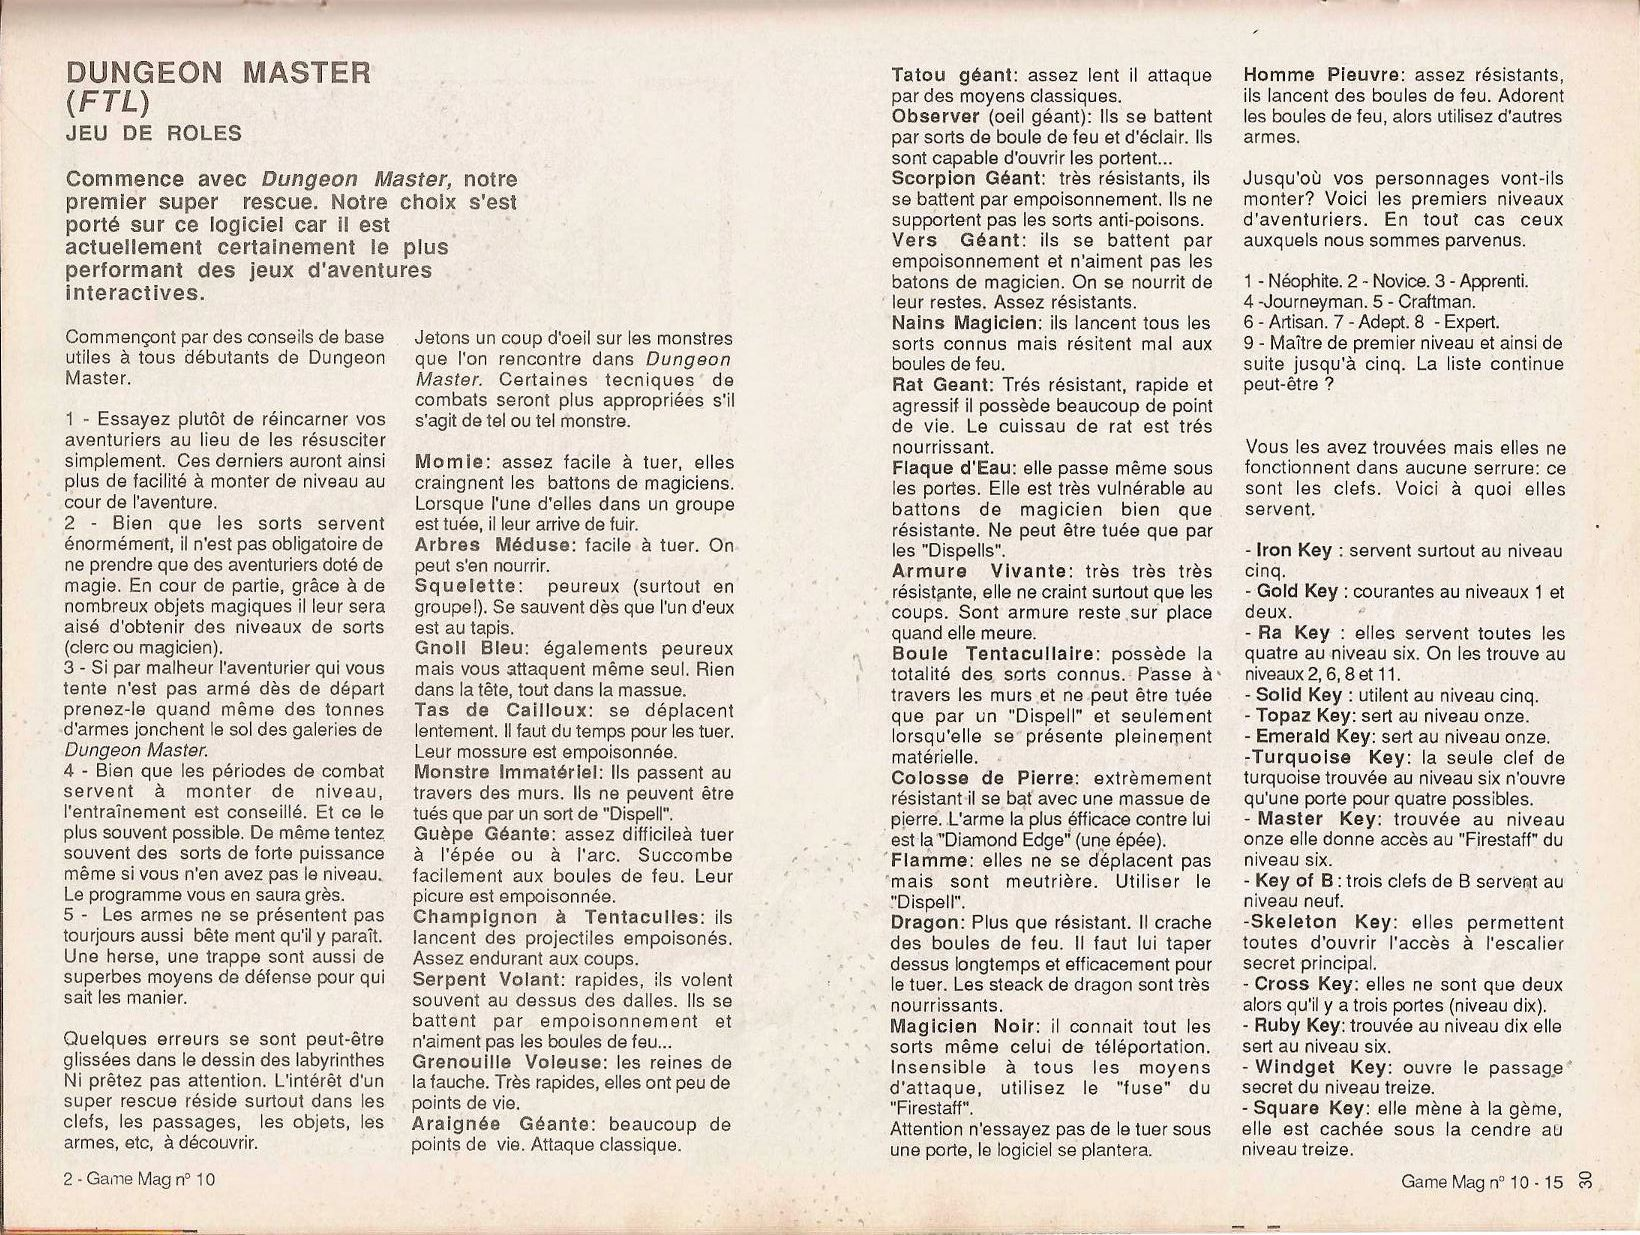 Dungeon Master Guide published in French magazine 'Game Mag', Issue #10 September 1988, Page 30